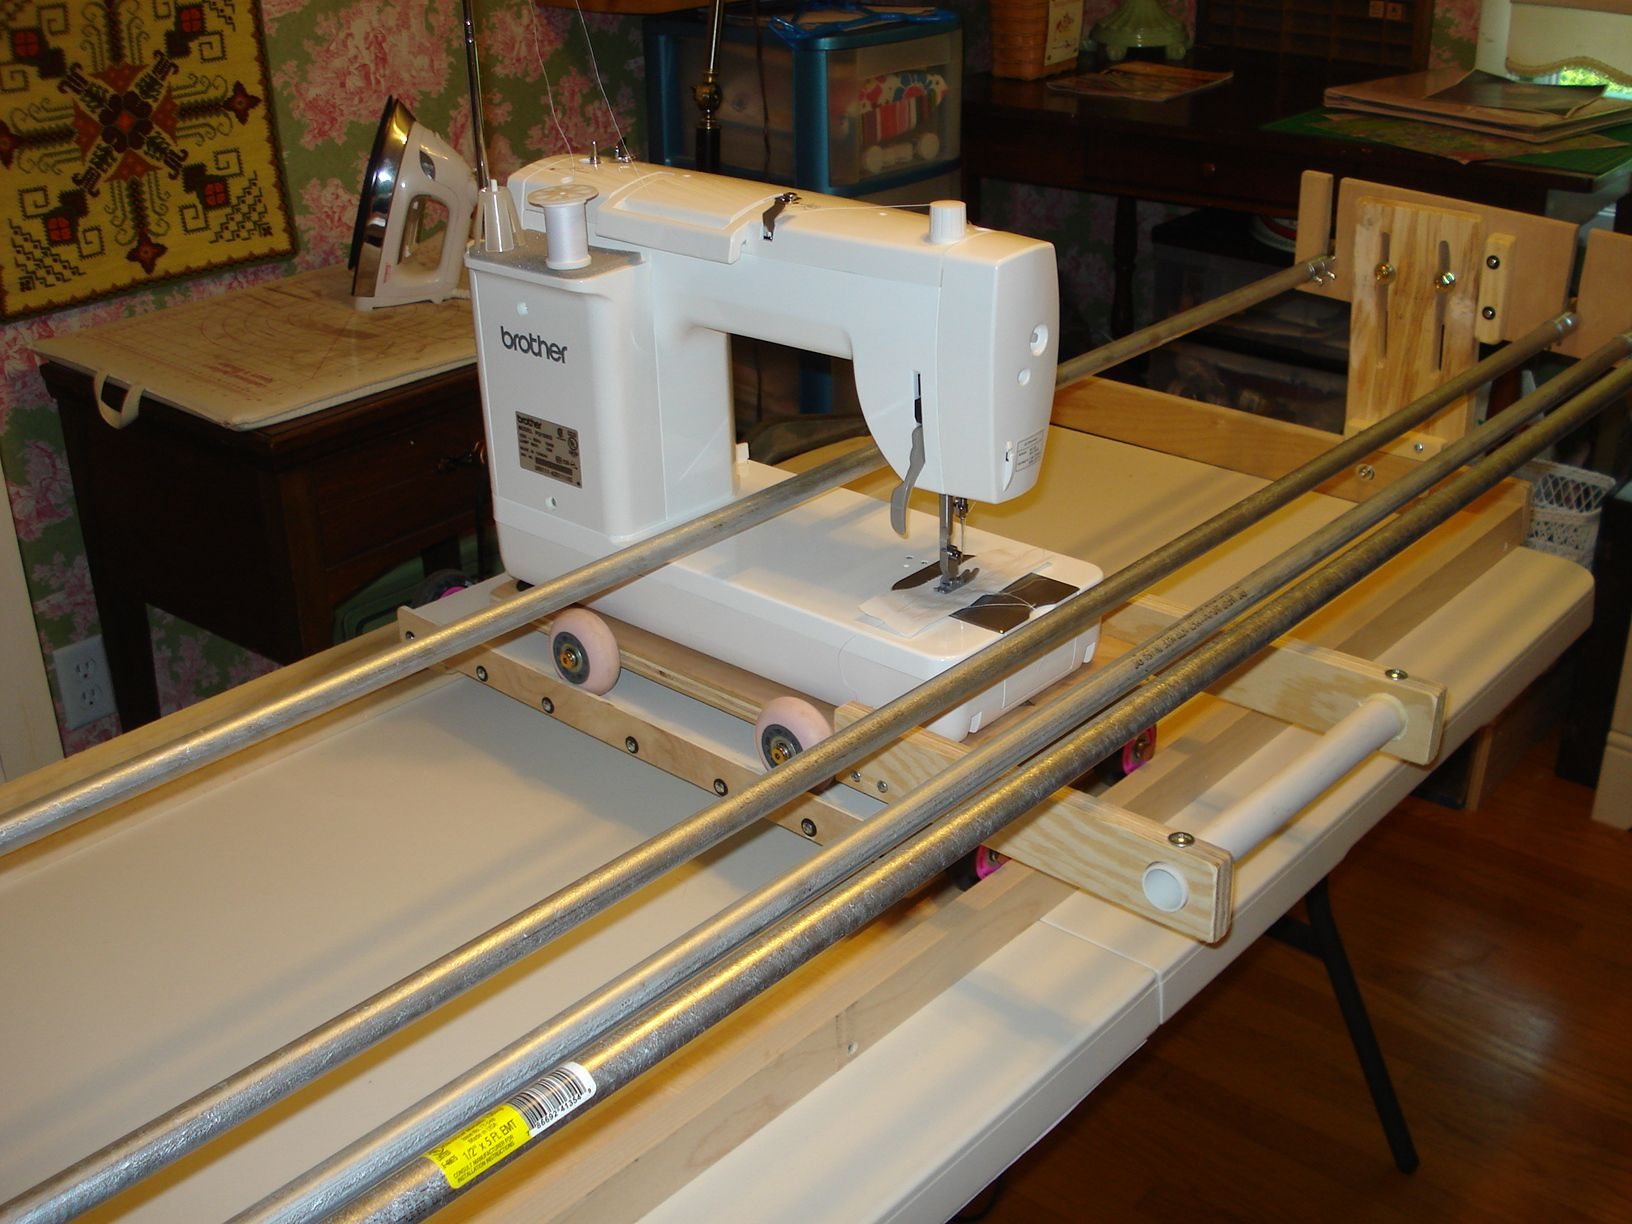 machine quilt frame | Thread: machine quilting frame | quilts ...